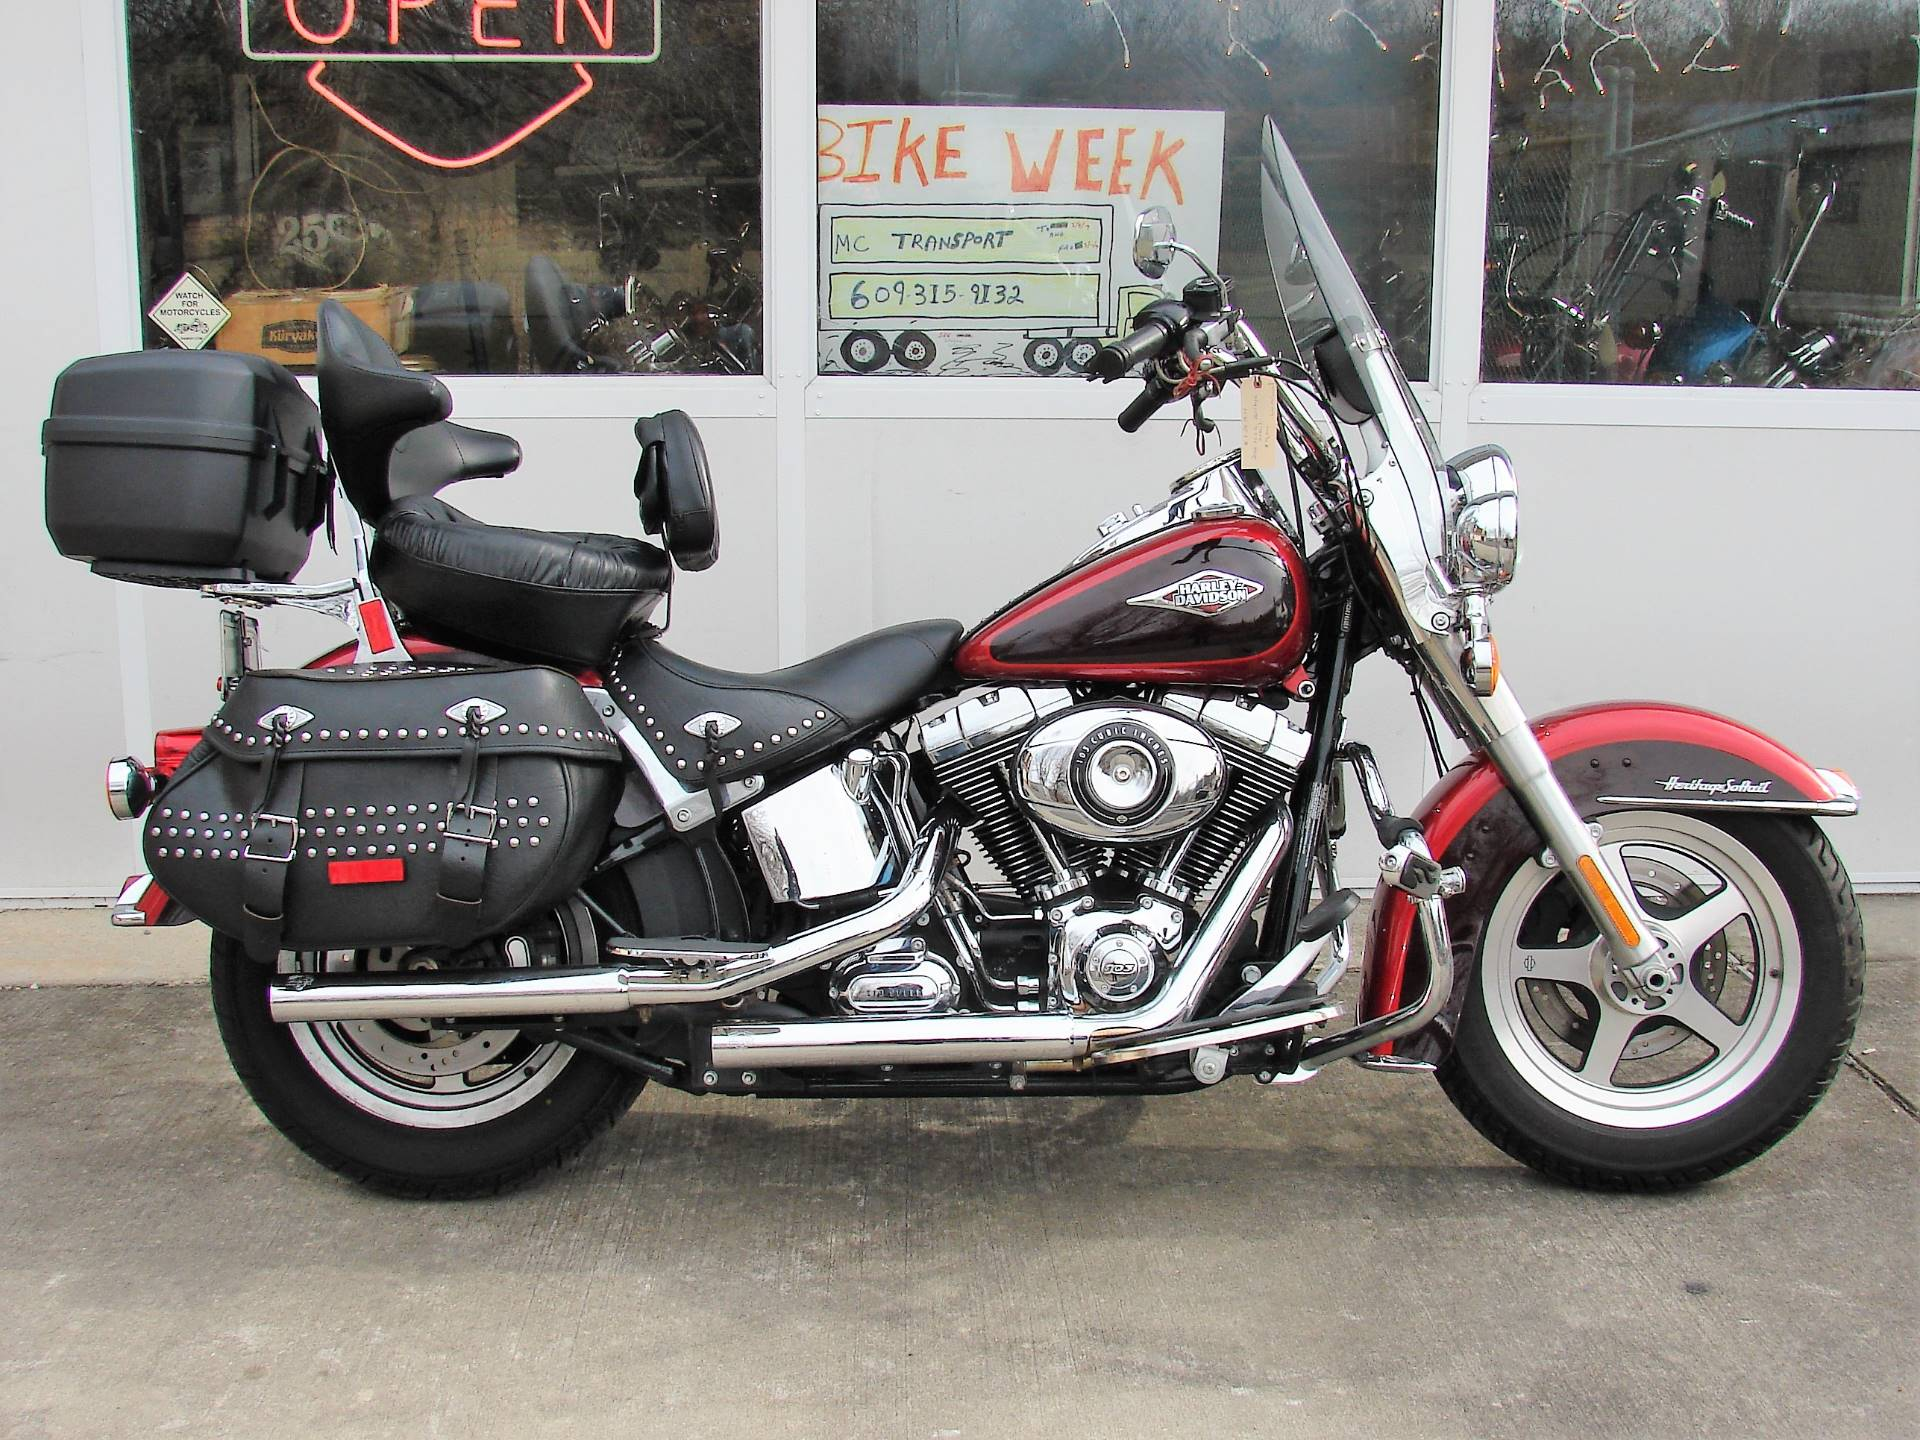 2012 Harley-Davidson Heritage Softail FLSTC in Williamstown, New Jersey - Photo 1